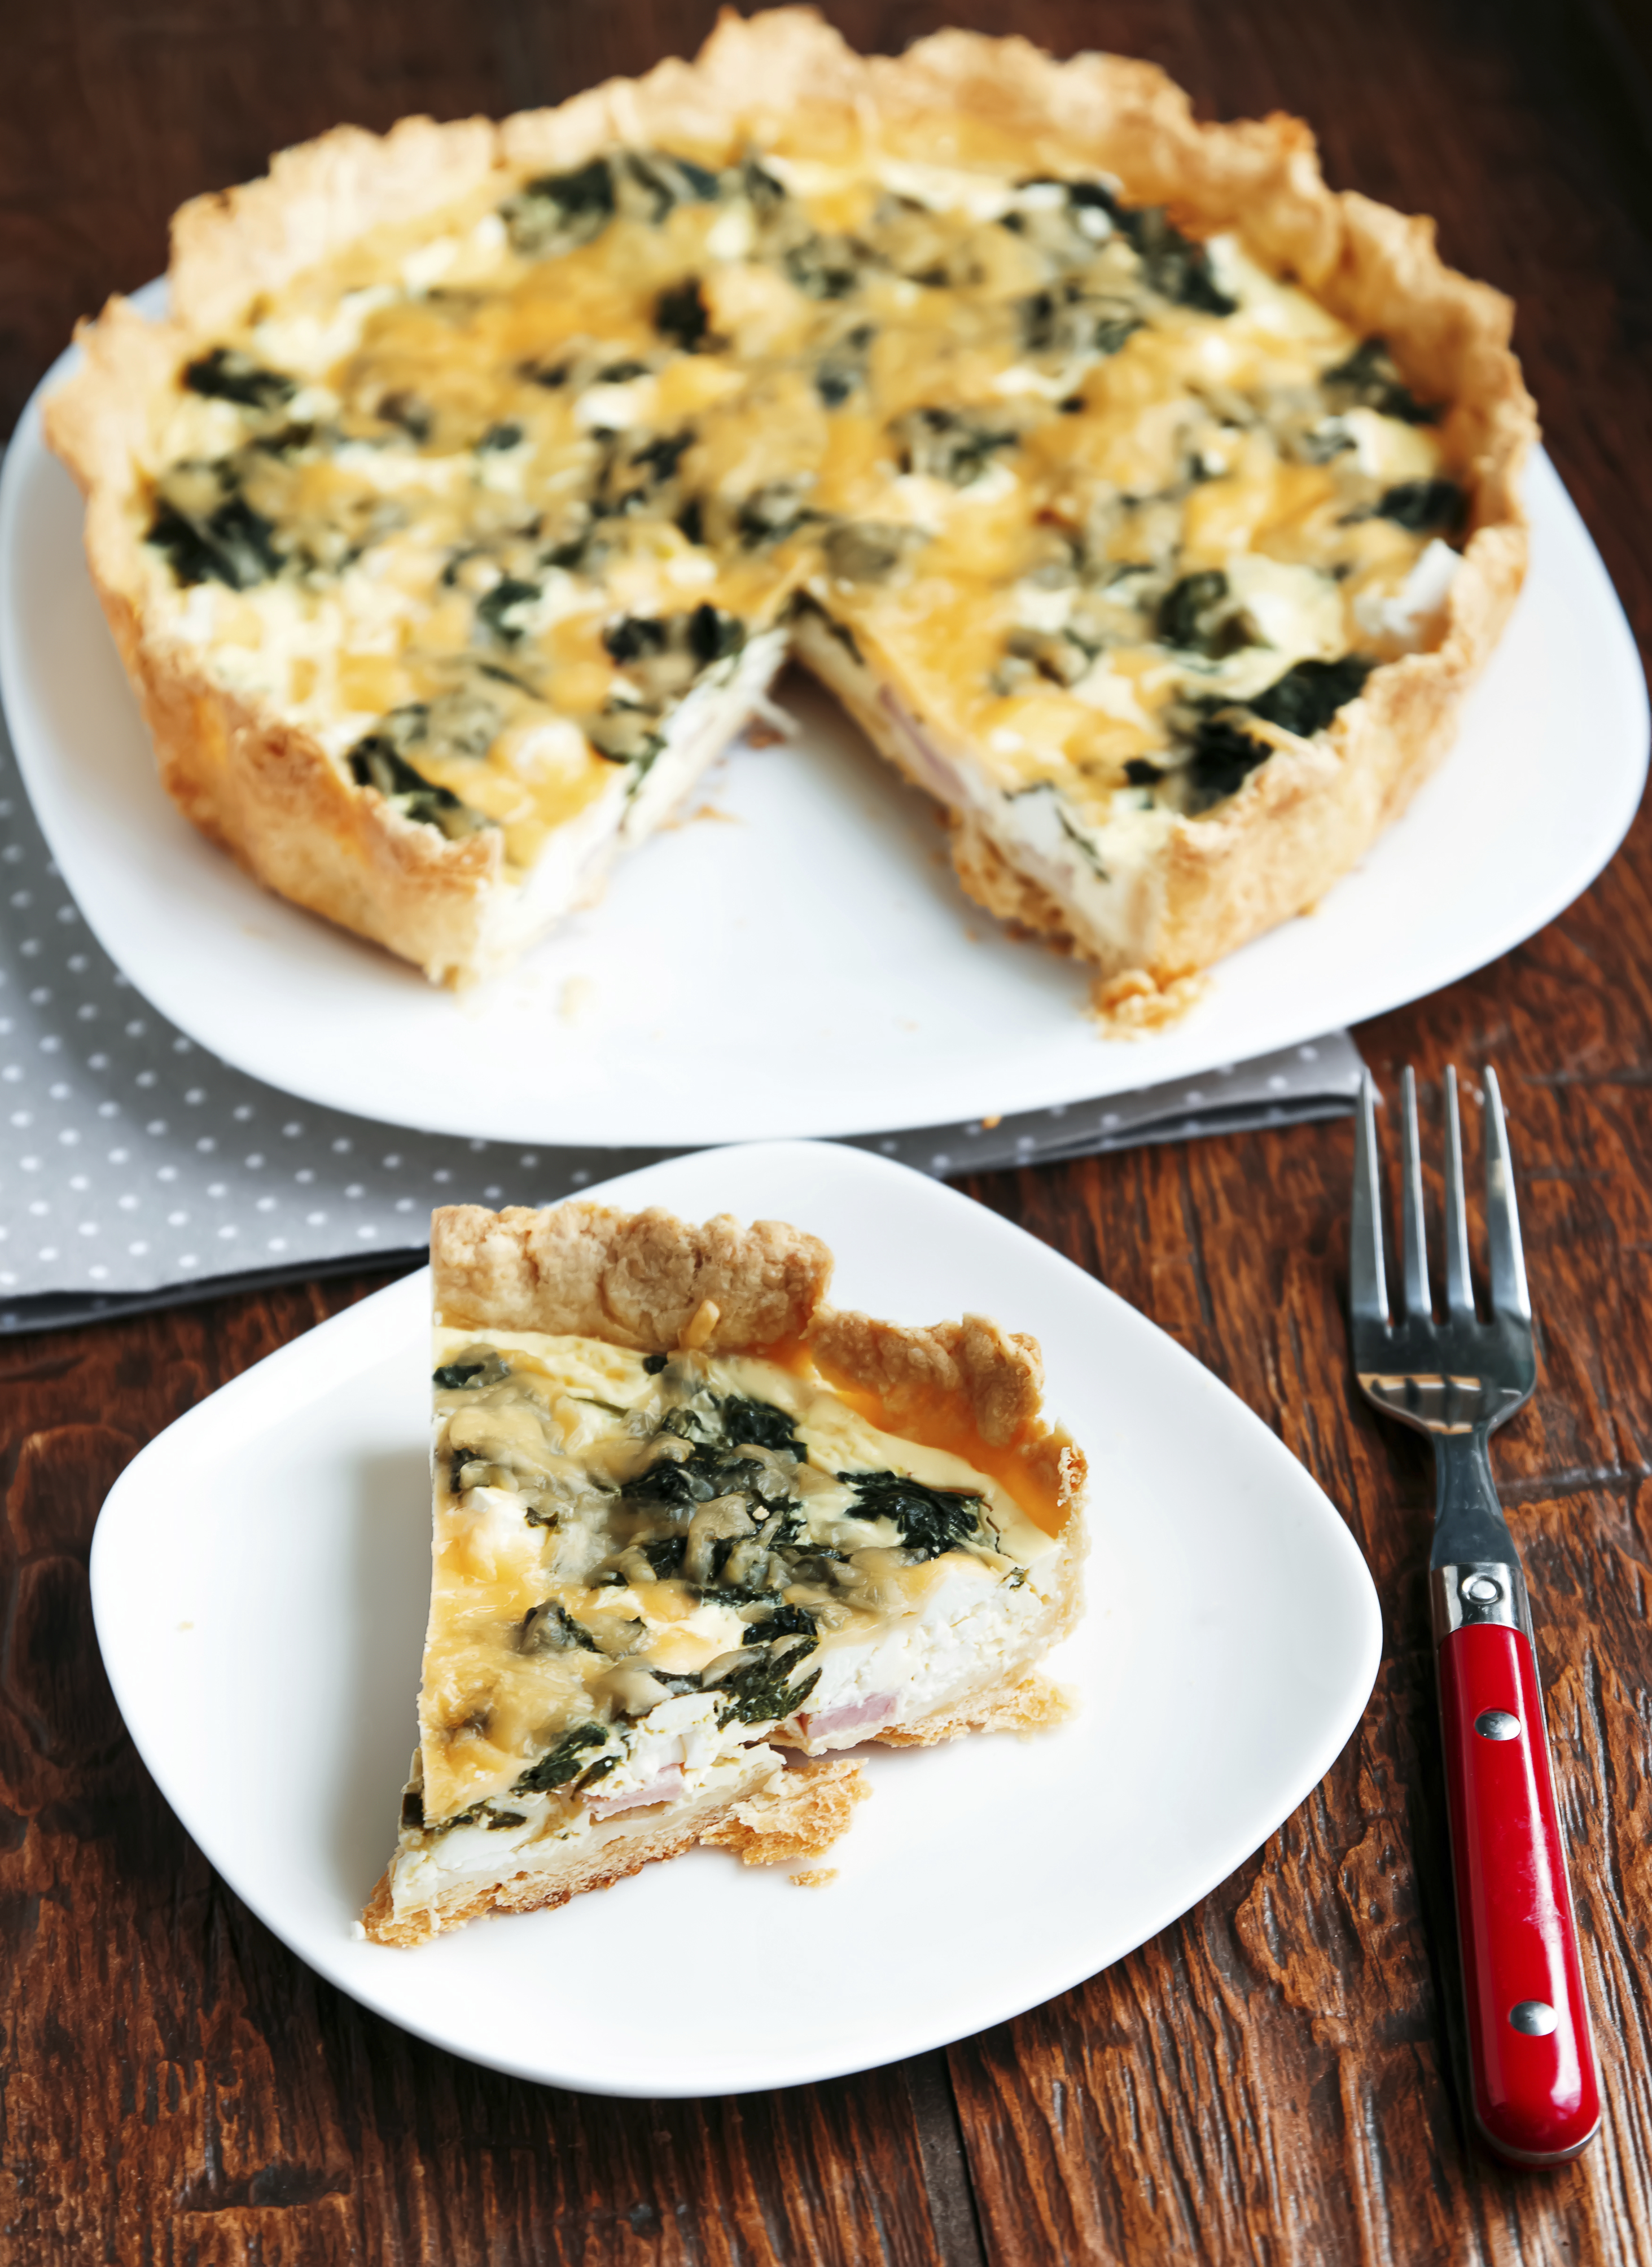 Spinach and feta quiche on the plate close-up